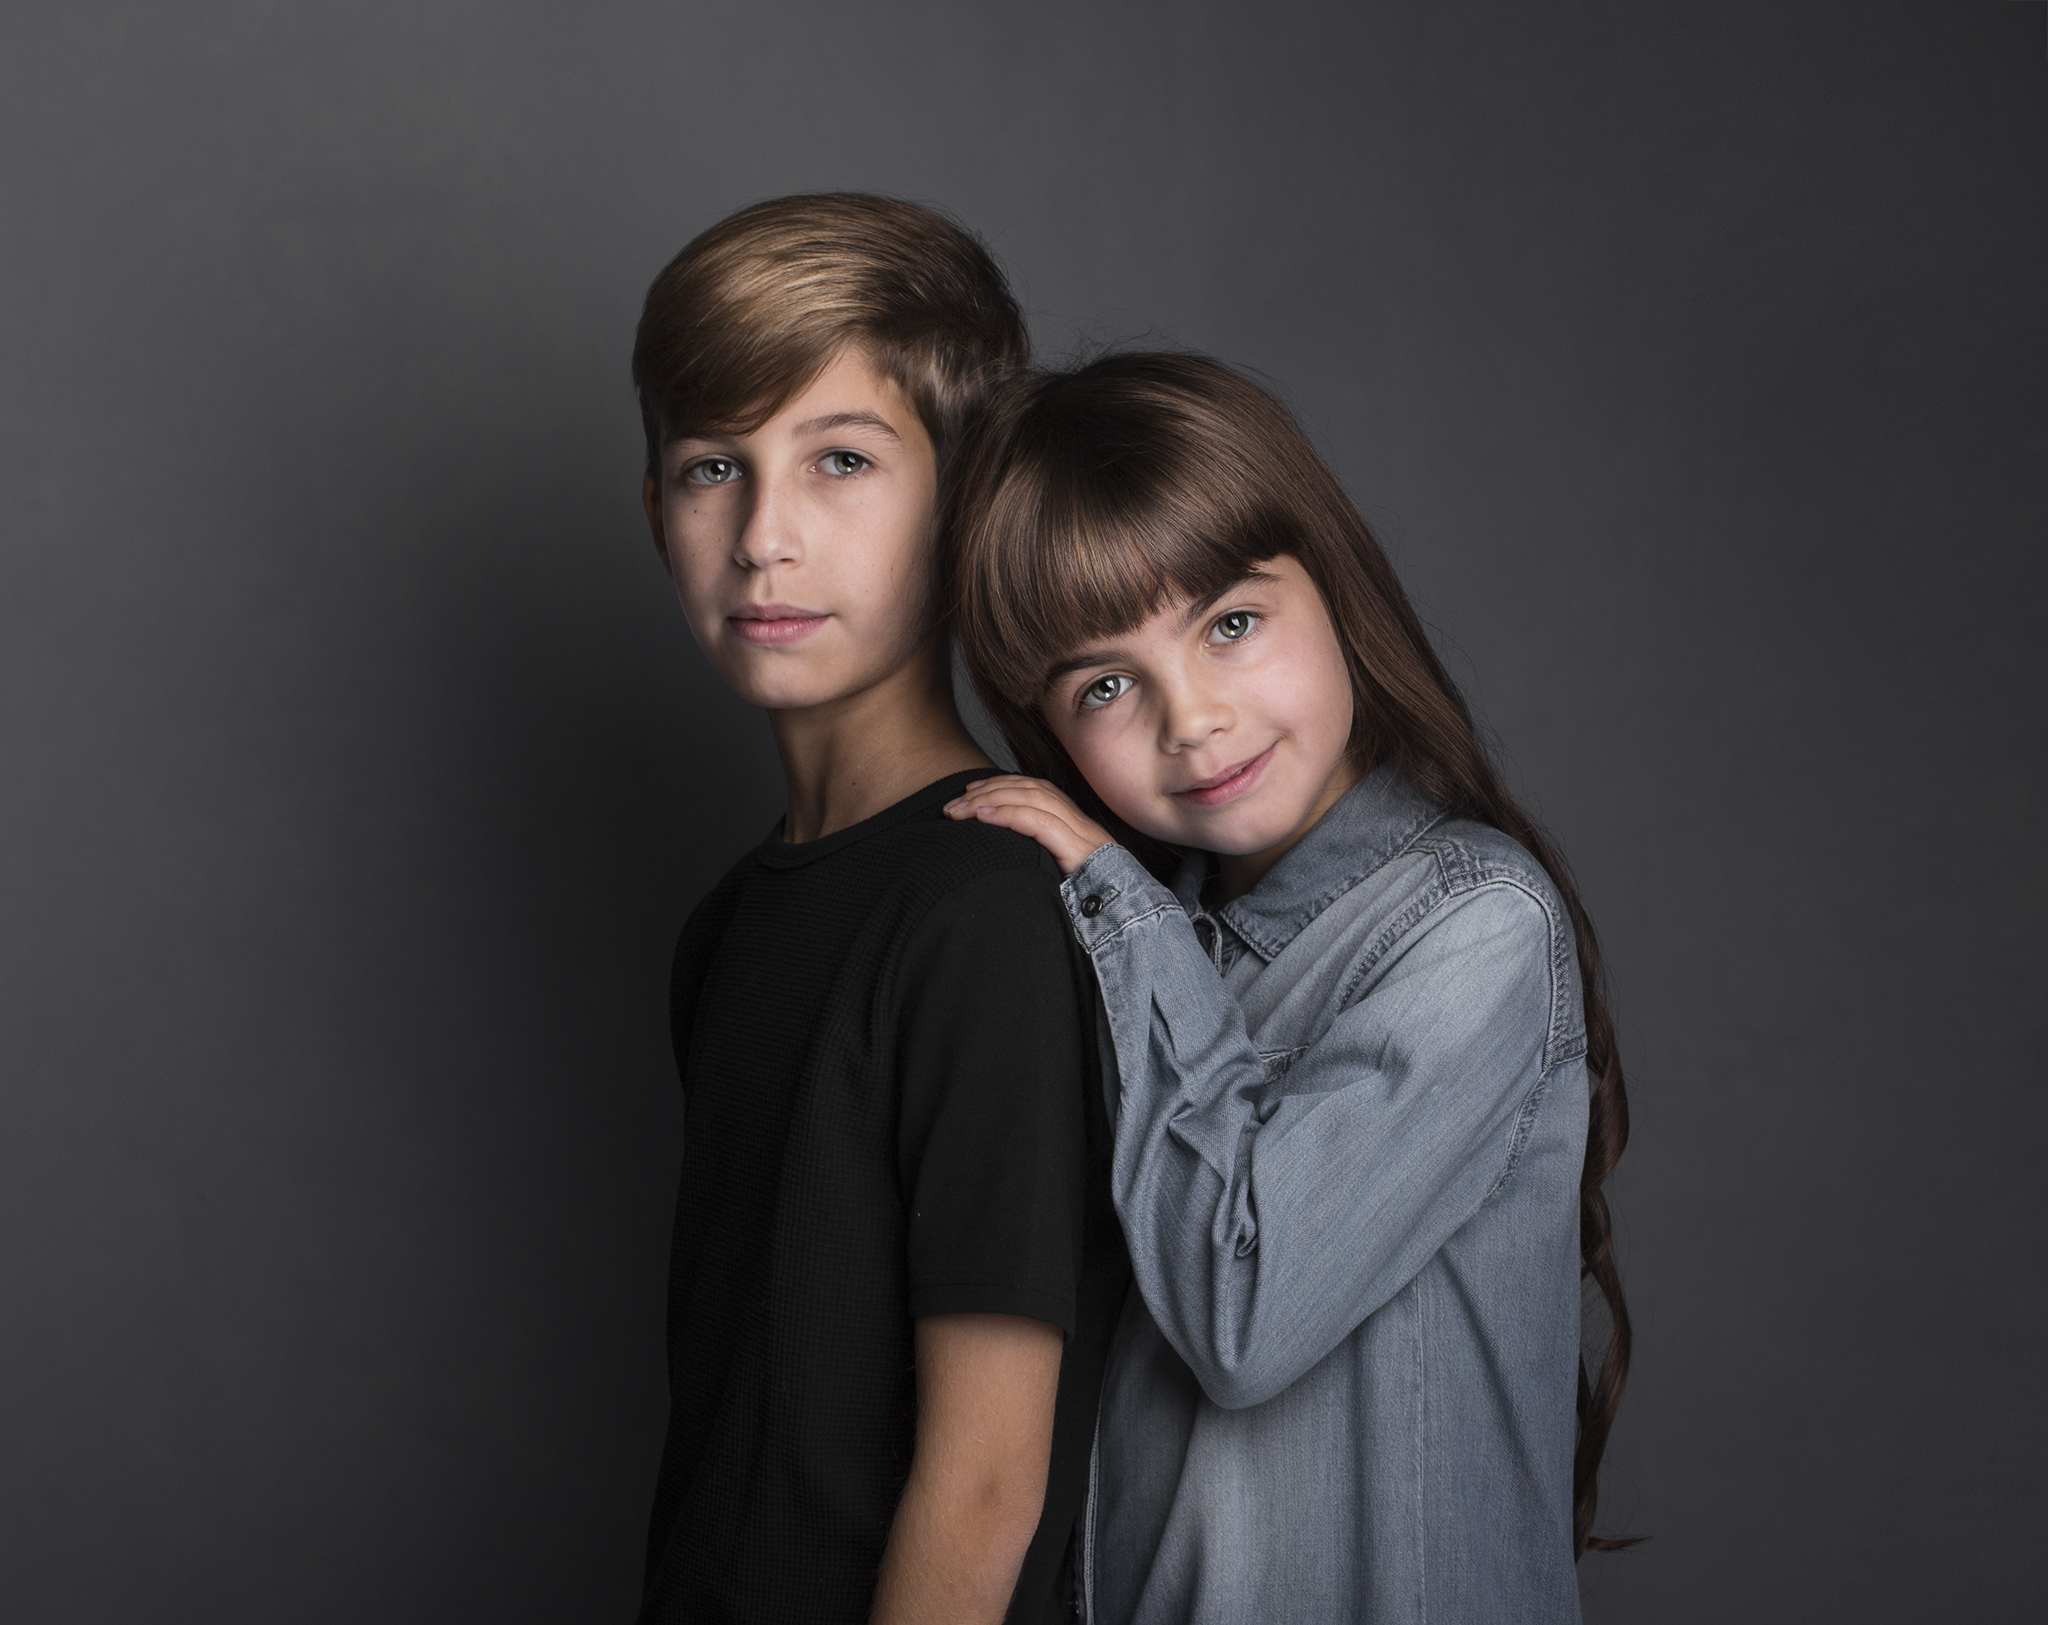 elizabethgfineartphotography_kingslangley_model_actor_chloe_alex1_family_portrait2.jpg